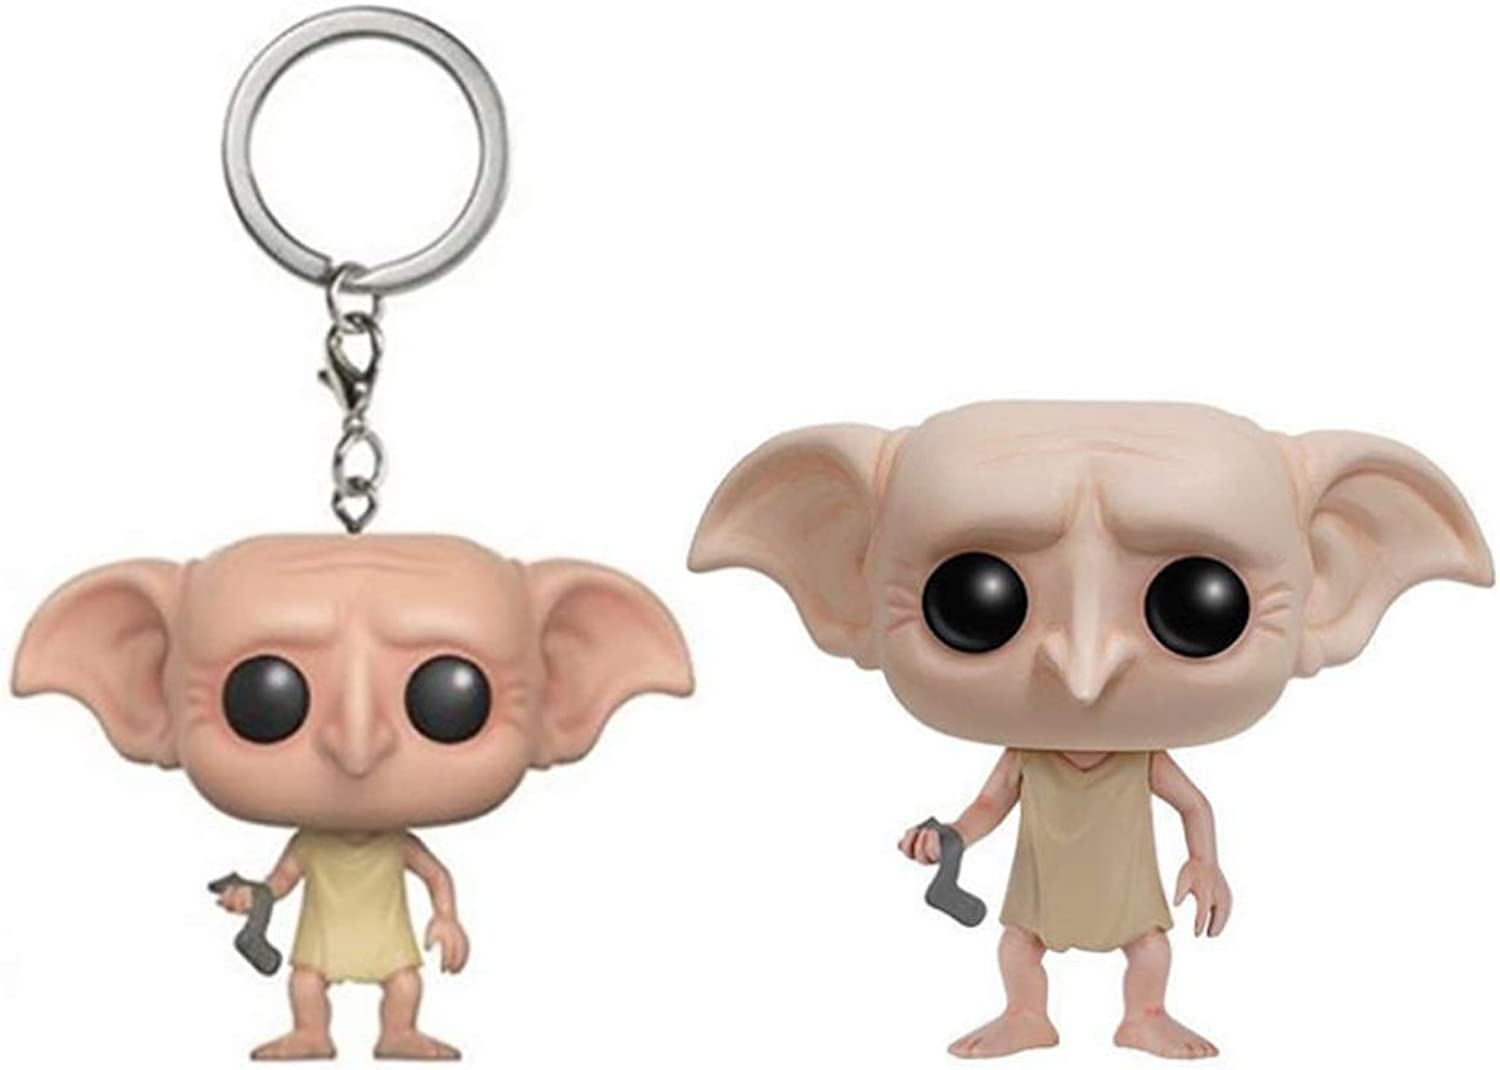 POP Model  Movie Character Model (2 Pieces) House Elf Character Model Keychain